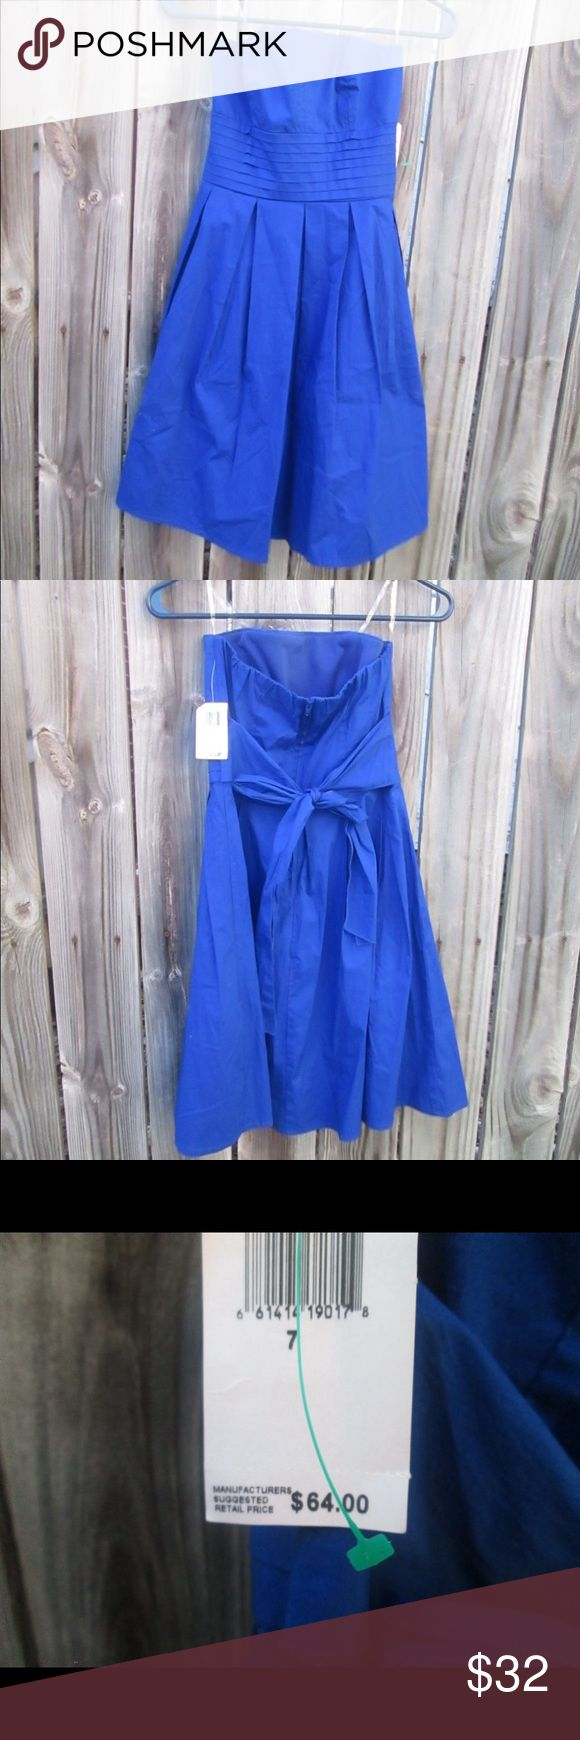 Royal Blue Short Bridesmaid Homecoming Dress A gorgeous Teeze Me royal blue Homecoming or bridesmaid dress. It is strapless and is new with tags. It is a size 7. Teeze Me Dresses Wedding